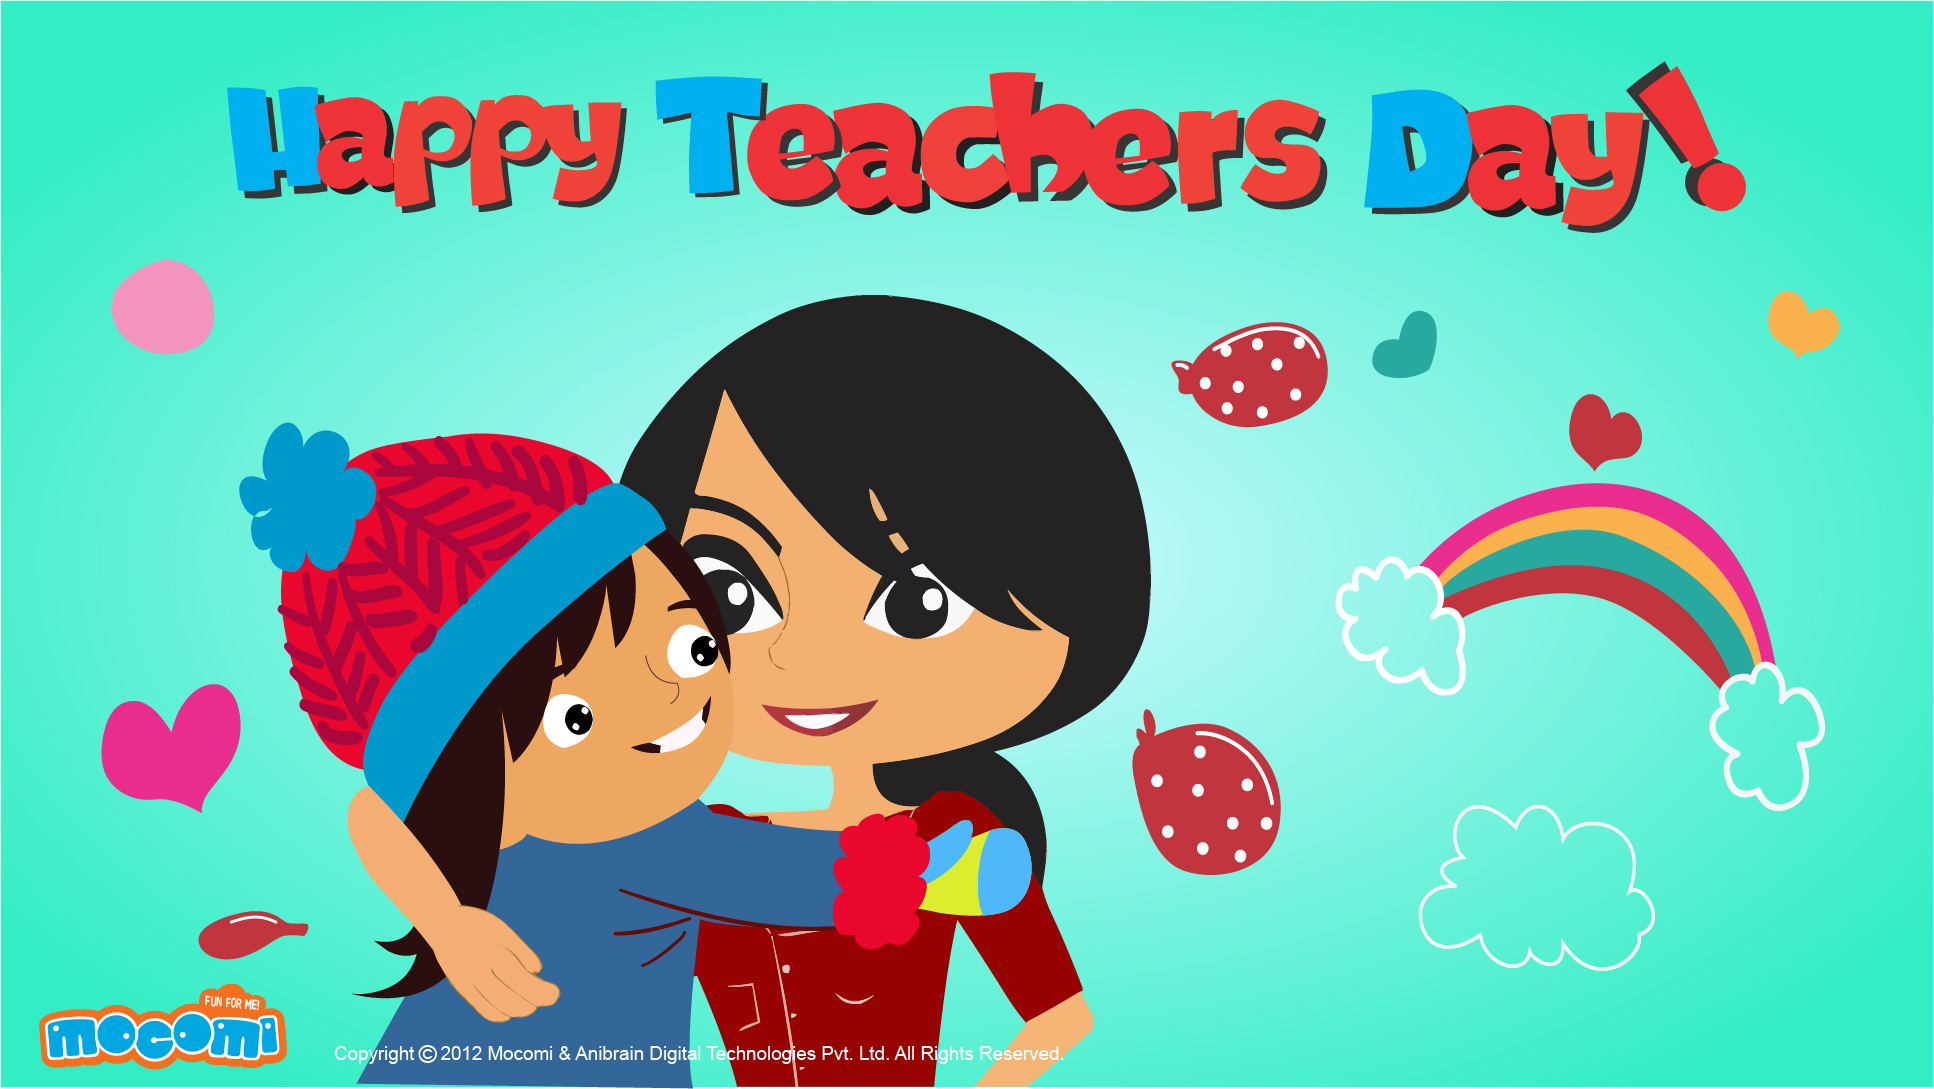 Happy Teachers' Day! 06